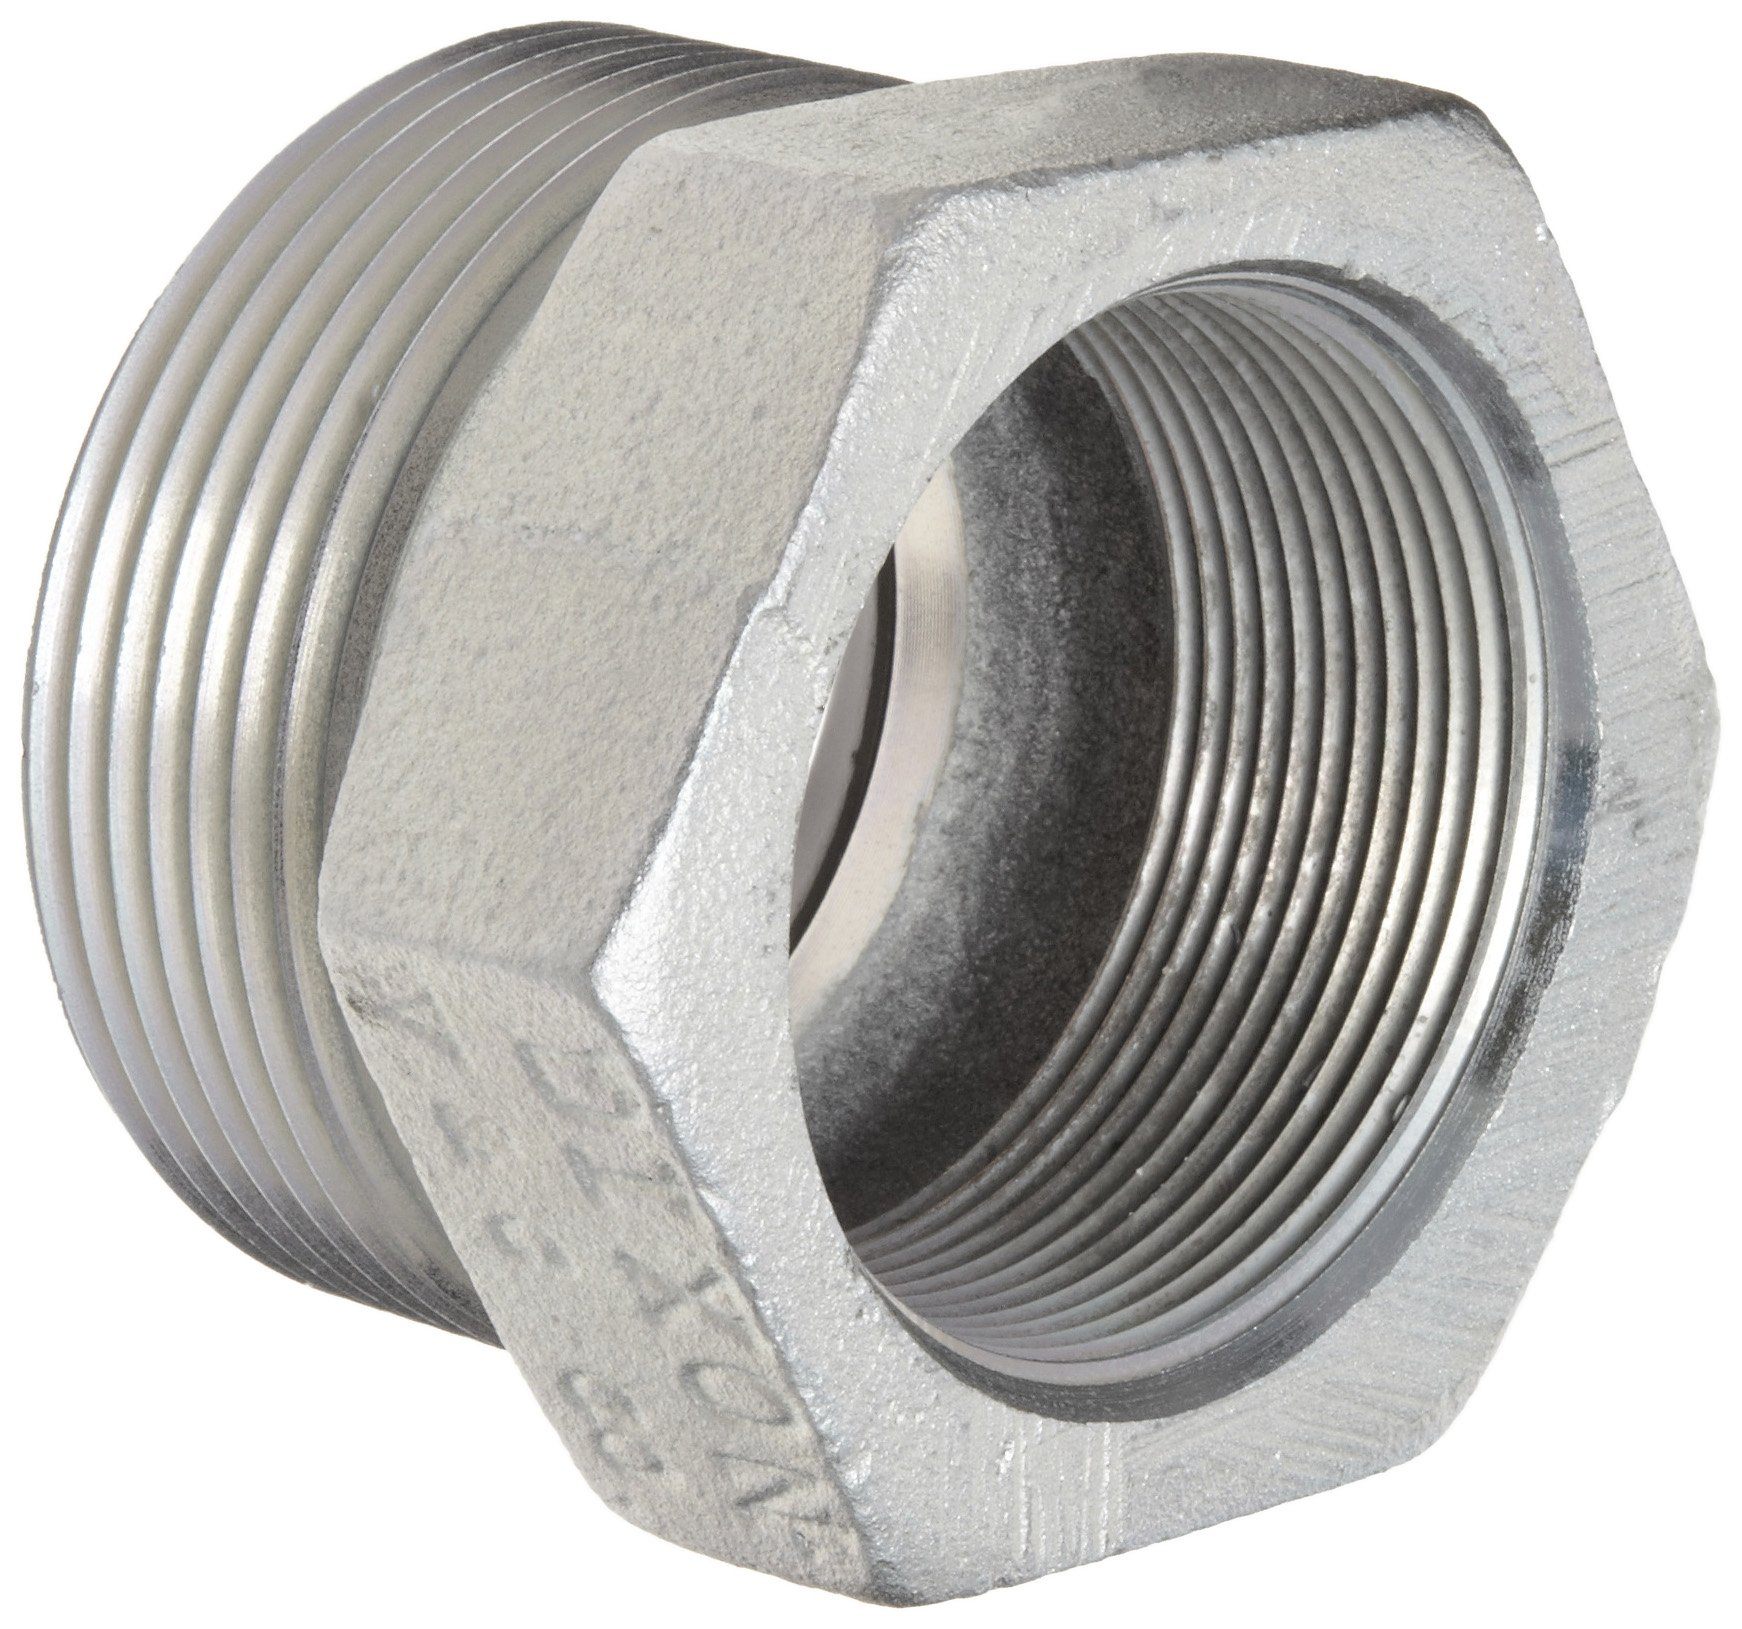 Dixon Boss GB28 Plated Iron Hose Fitting, Spud for GJ Boss Ground Joint Seal, 2'' NPT Female